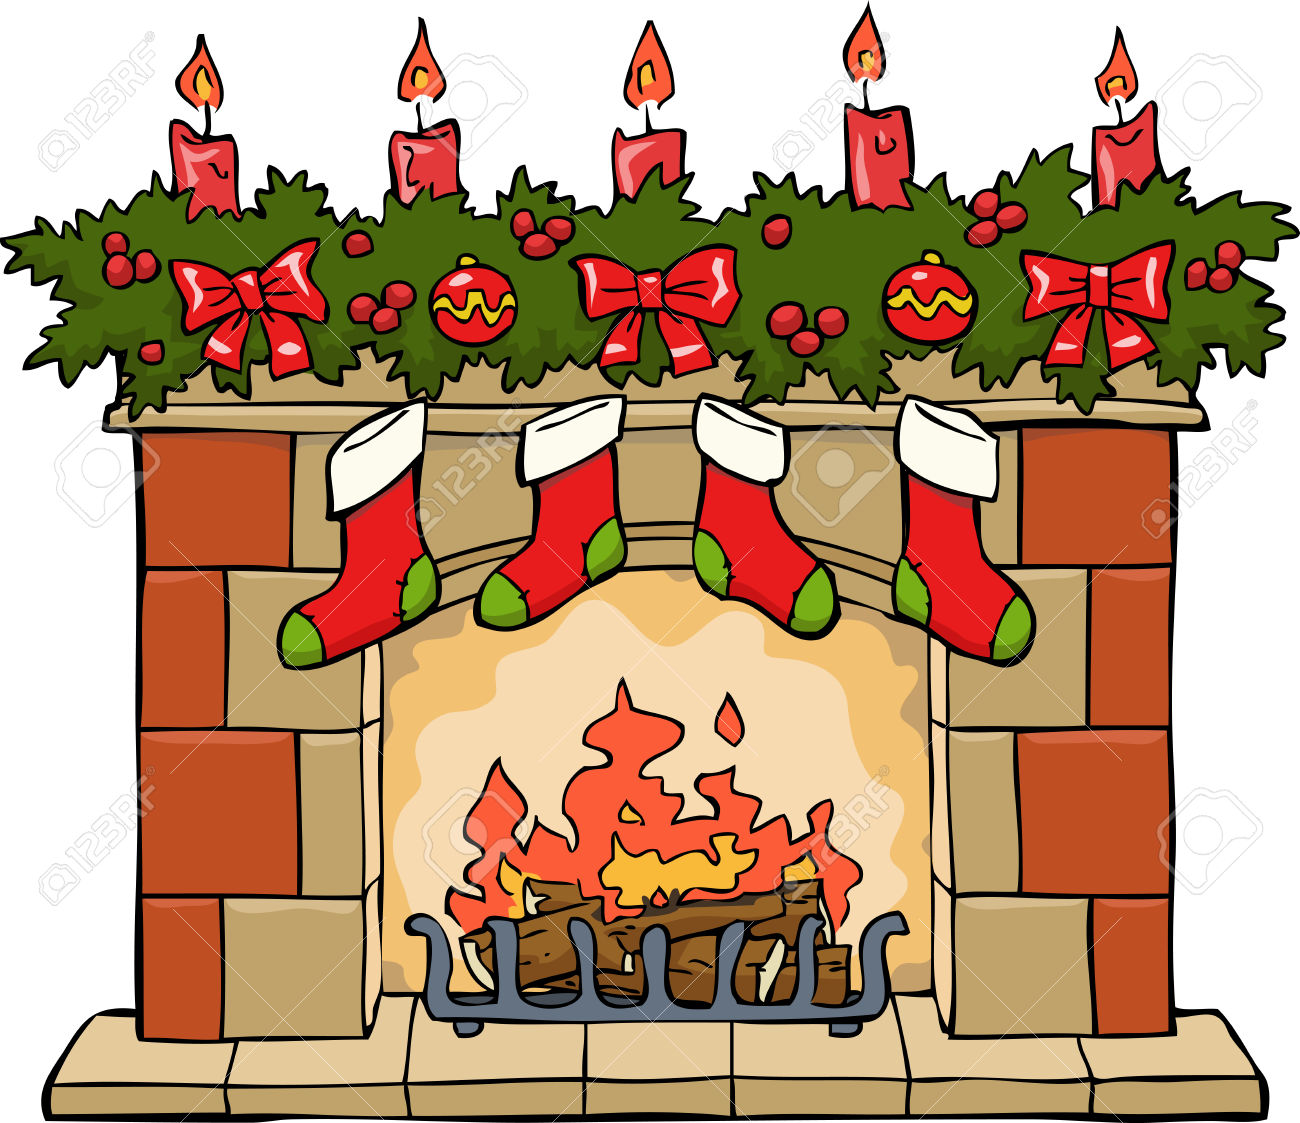 Fireplace clipart live. Christmas tumundografico clipartix